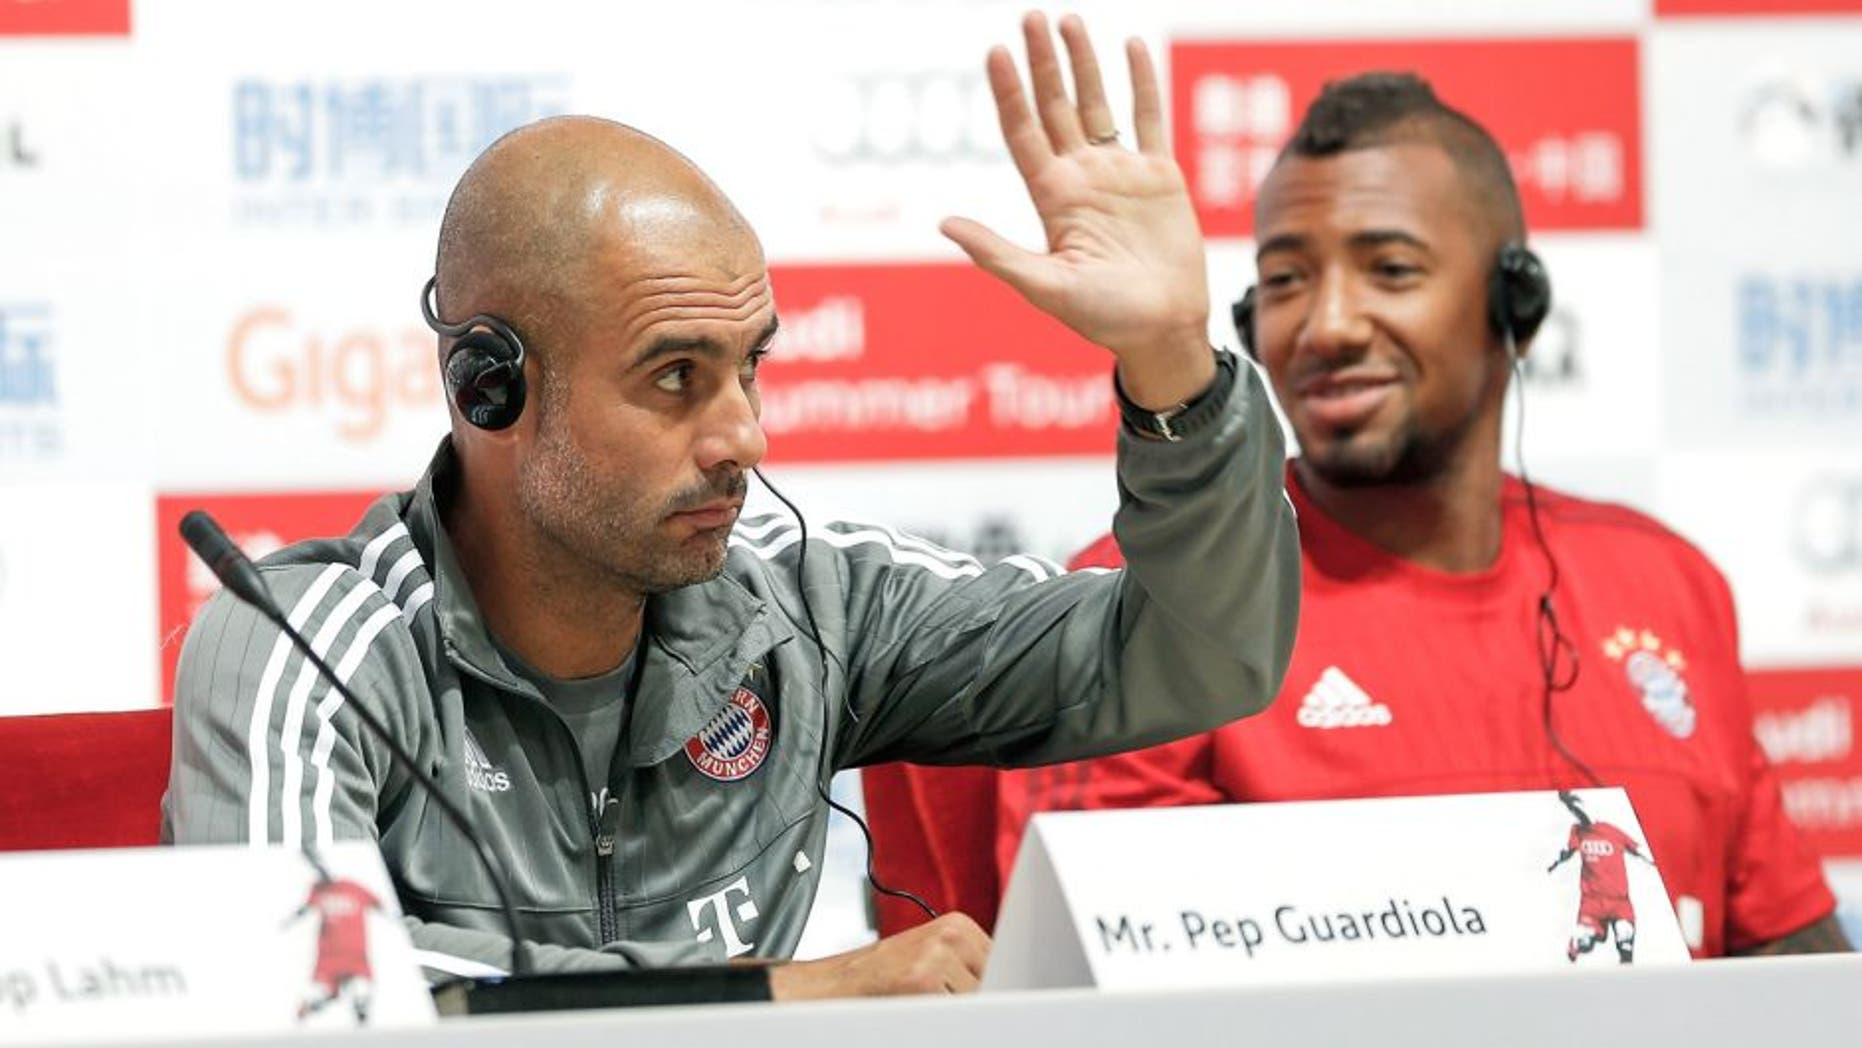 BEIJING, CHINA - JULY 17: Head coach Pep Guardiola of Bayern gestures with Jerome Boateng during the a press conference at National Stadium in day 1 of the FC Bayern Audi China Summer Pre-Season Tour on July 17, 2015 in Beijing, China. (Photo by Lintao Zhang/Getty Images)